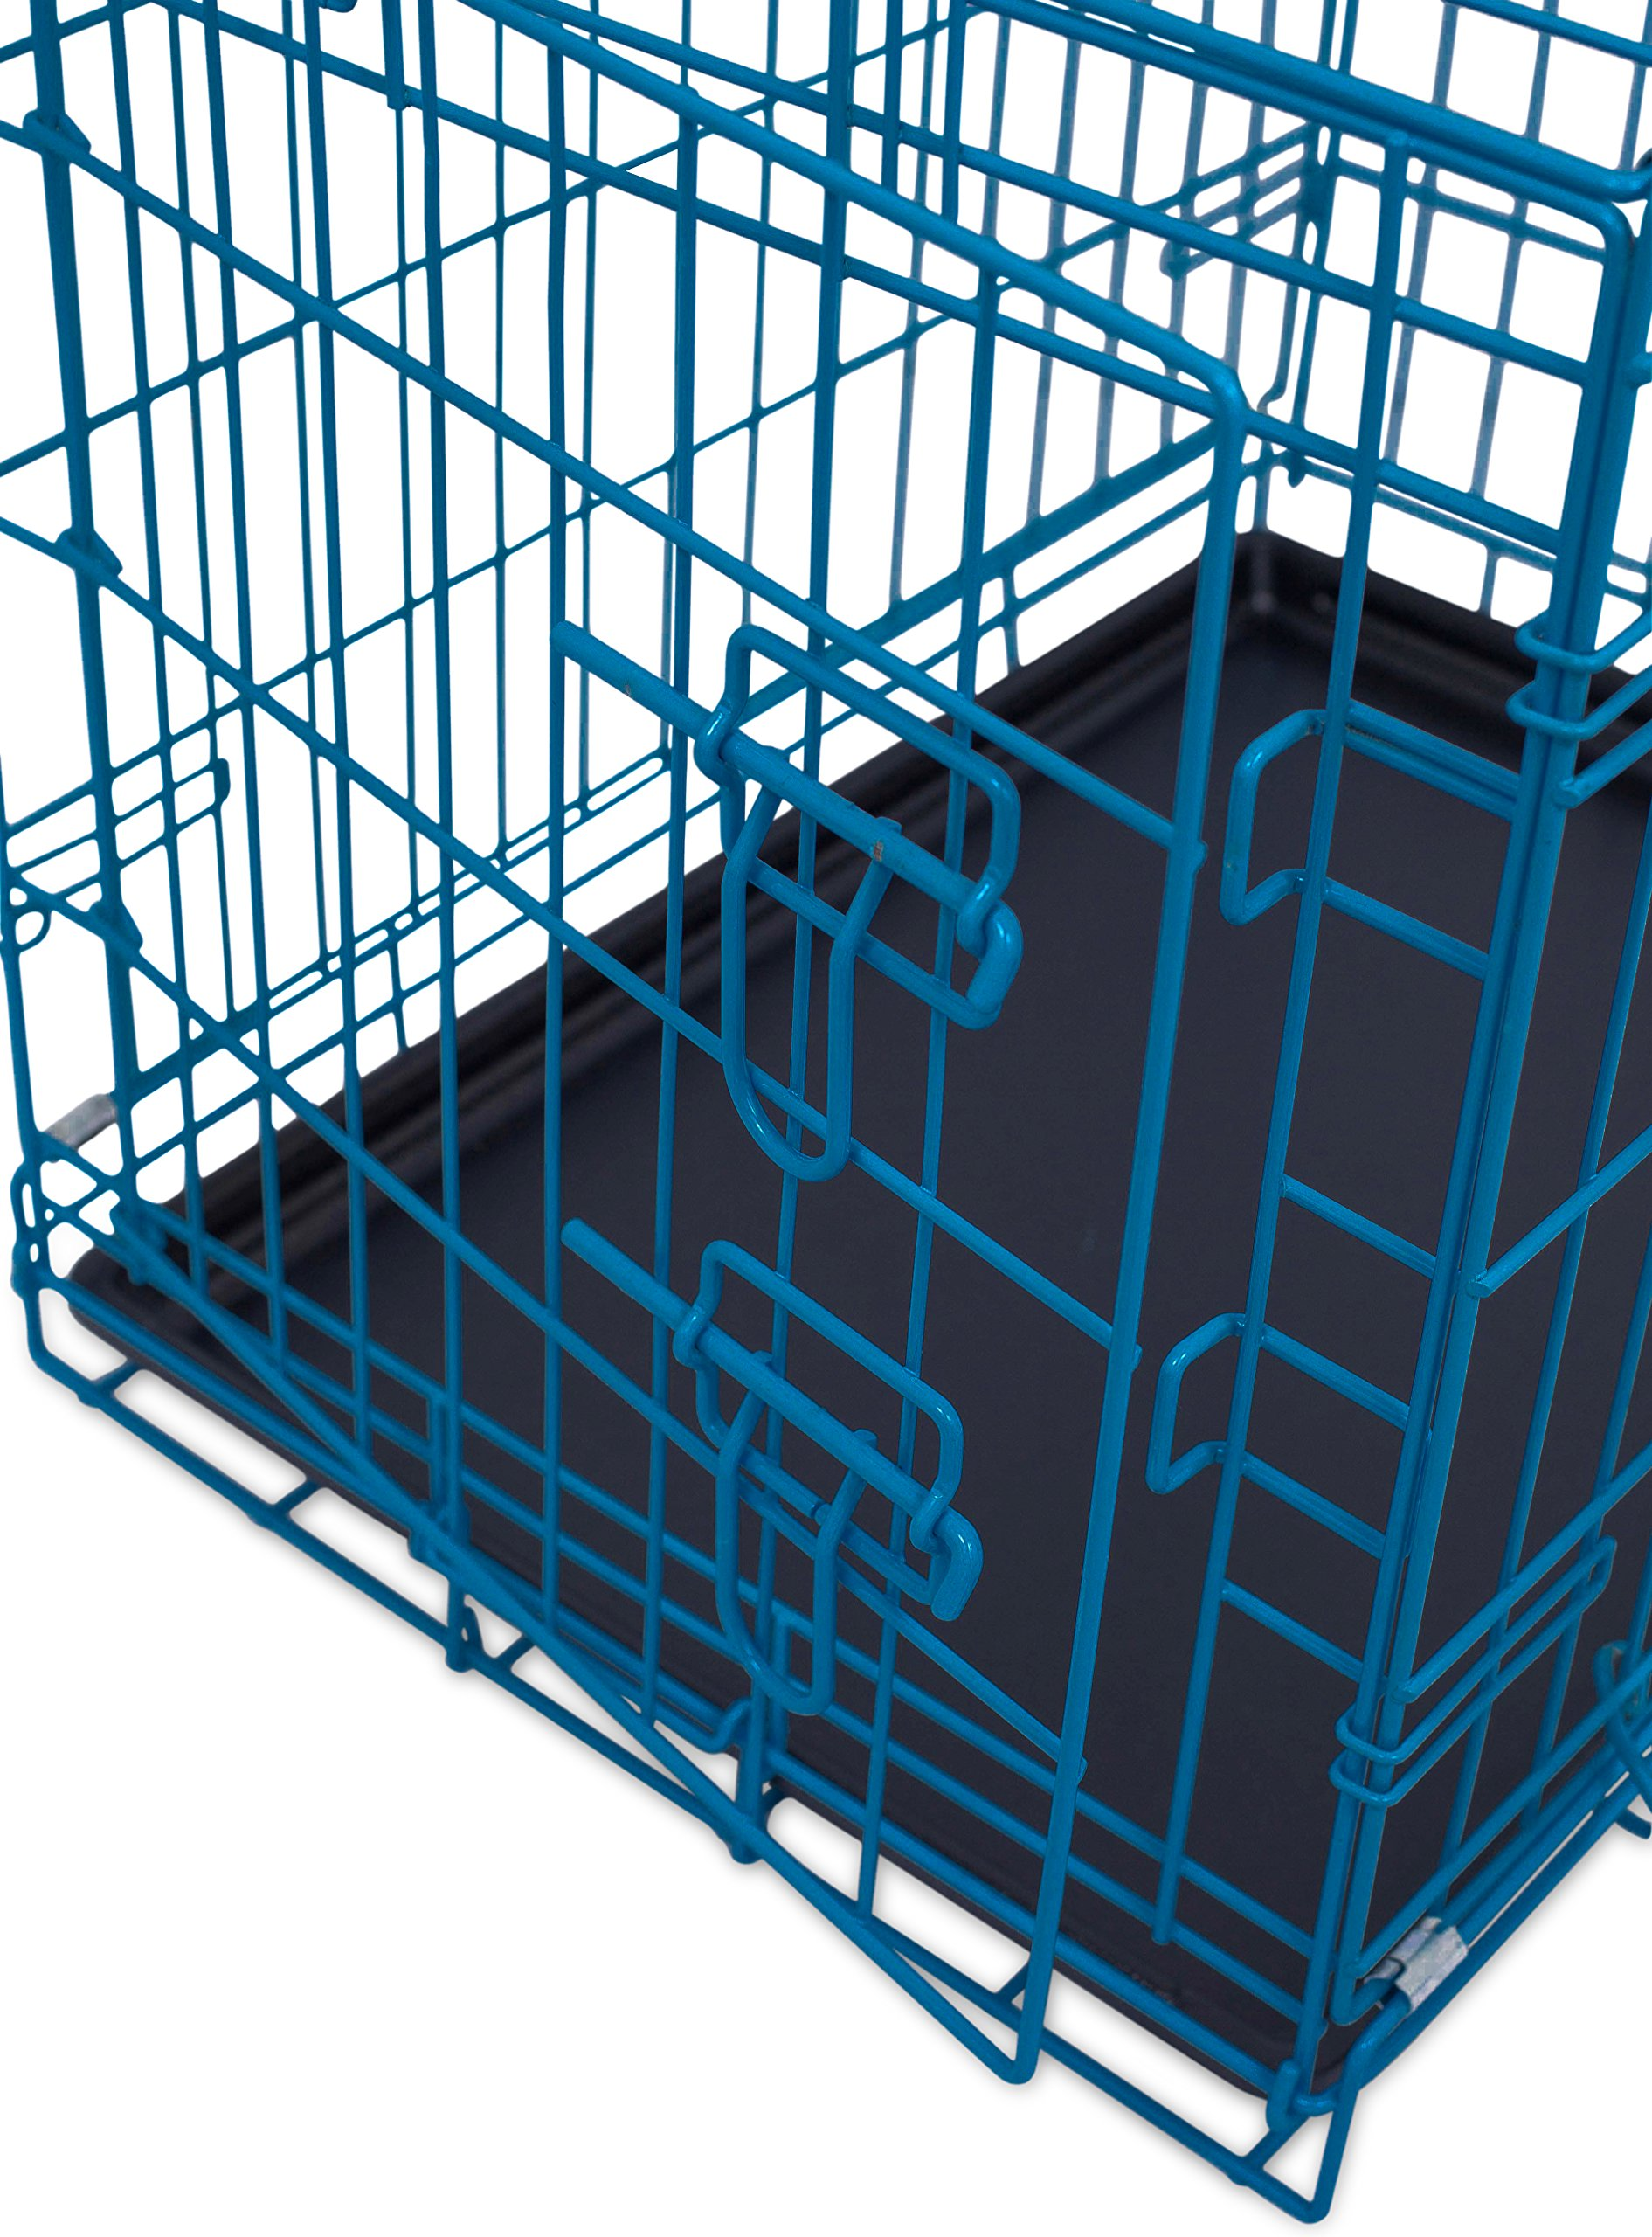 Internet's Best Double Door Steel Crates Collapsible and Foldable Wire Dog Kennel, 24 Inch (Small), Blue by Internet's Best (Image #4)